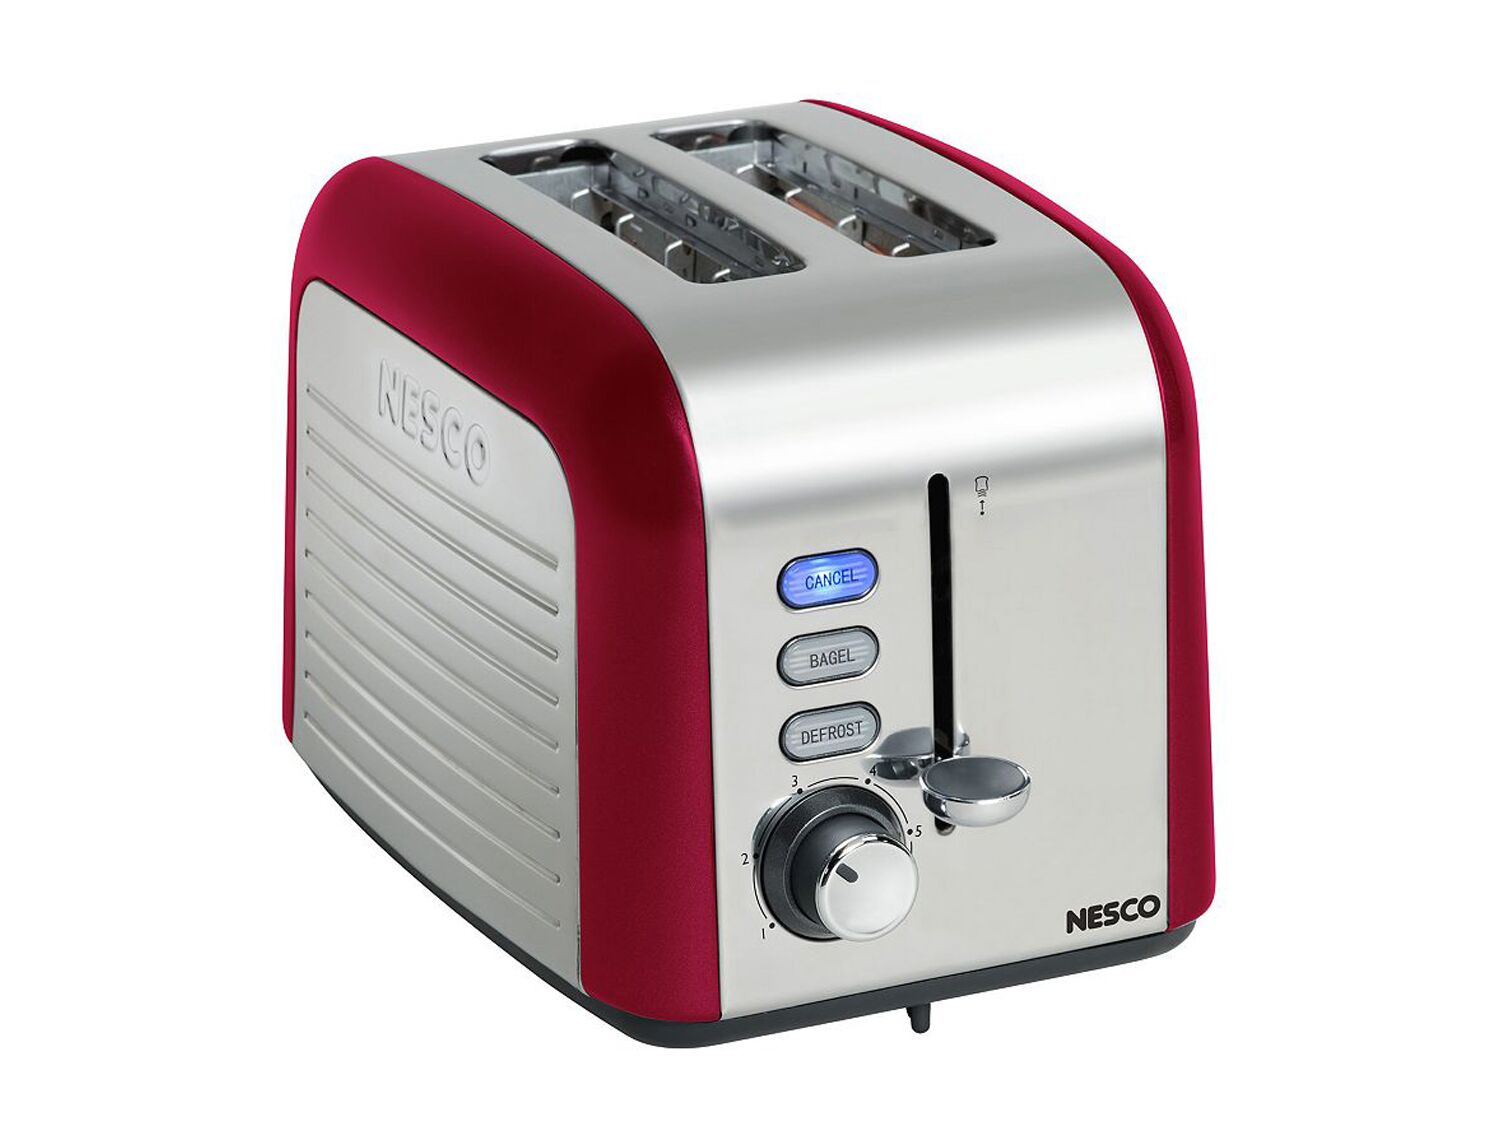 steel exquisite of stainless beguiling http t laudable sunroom dazzle gratify cuisinart ca slice toaster inspirational calphalon compact wonderful acceptable size full bedbathandbeyond